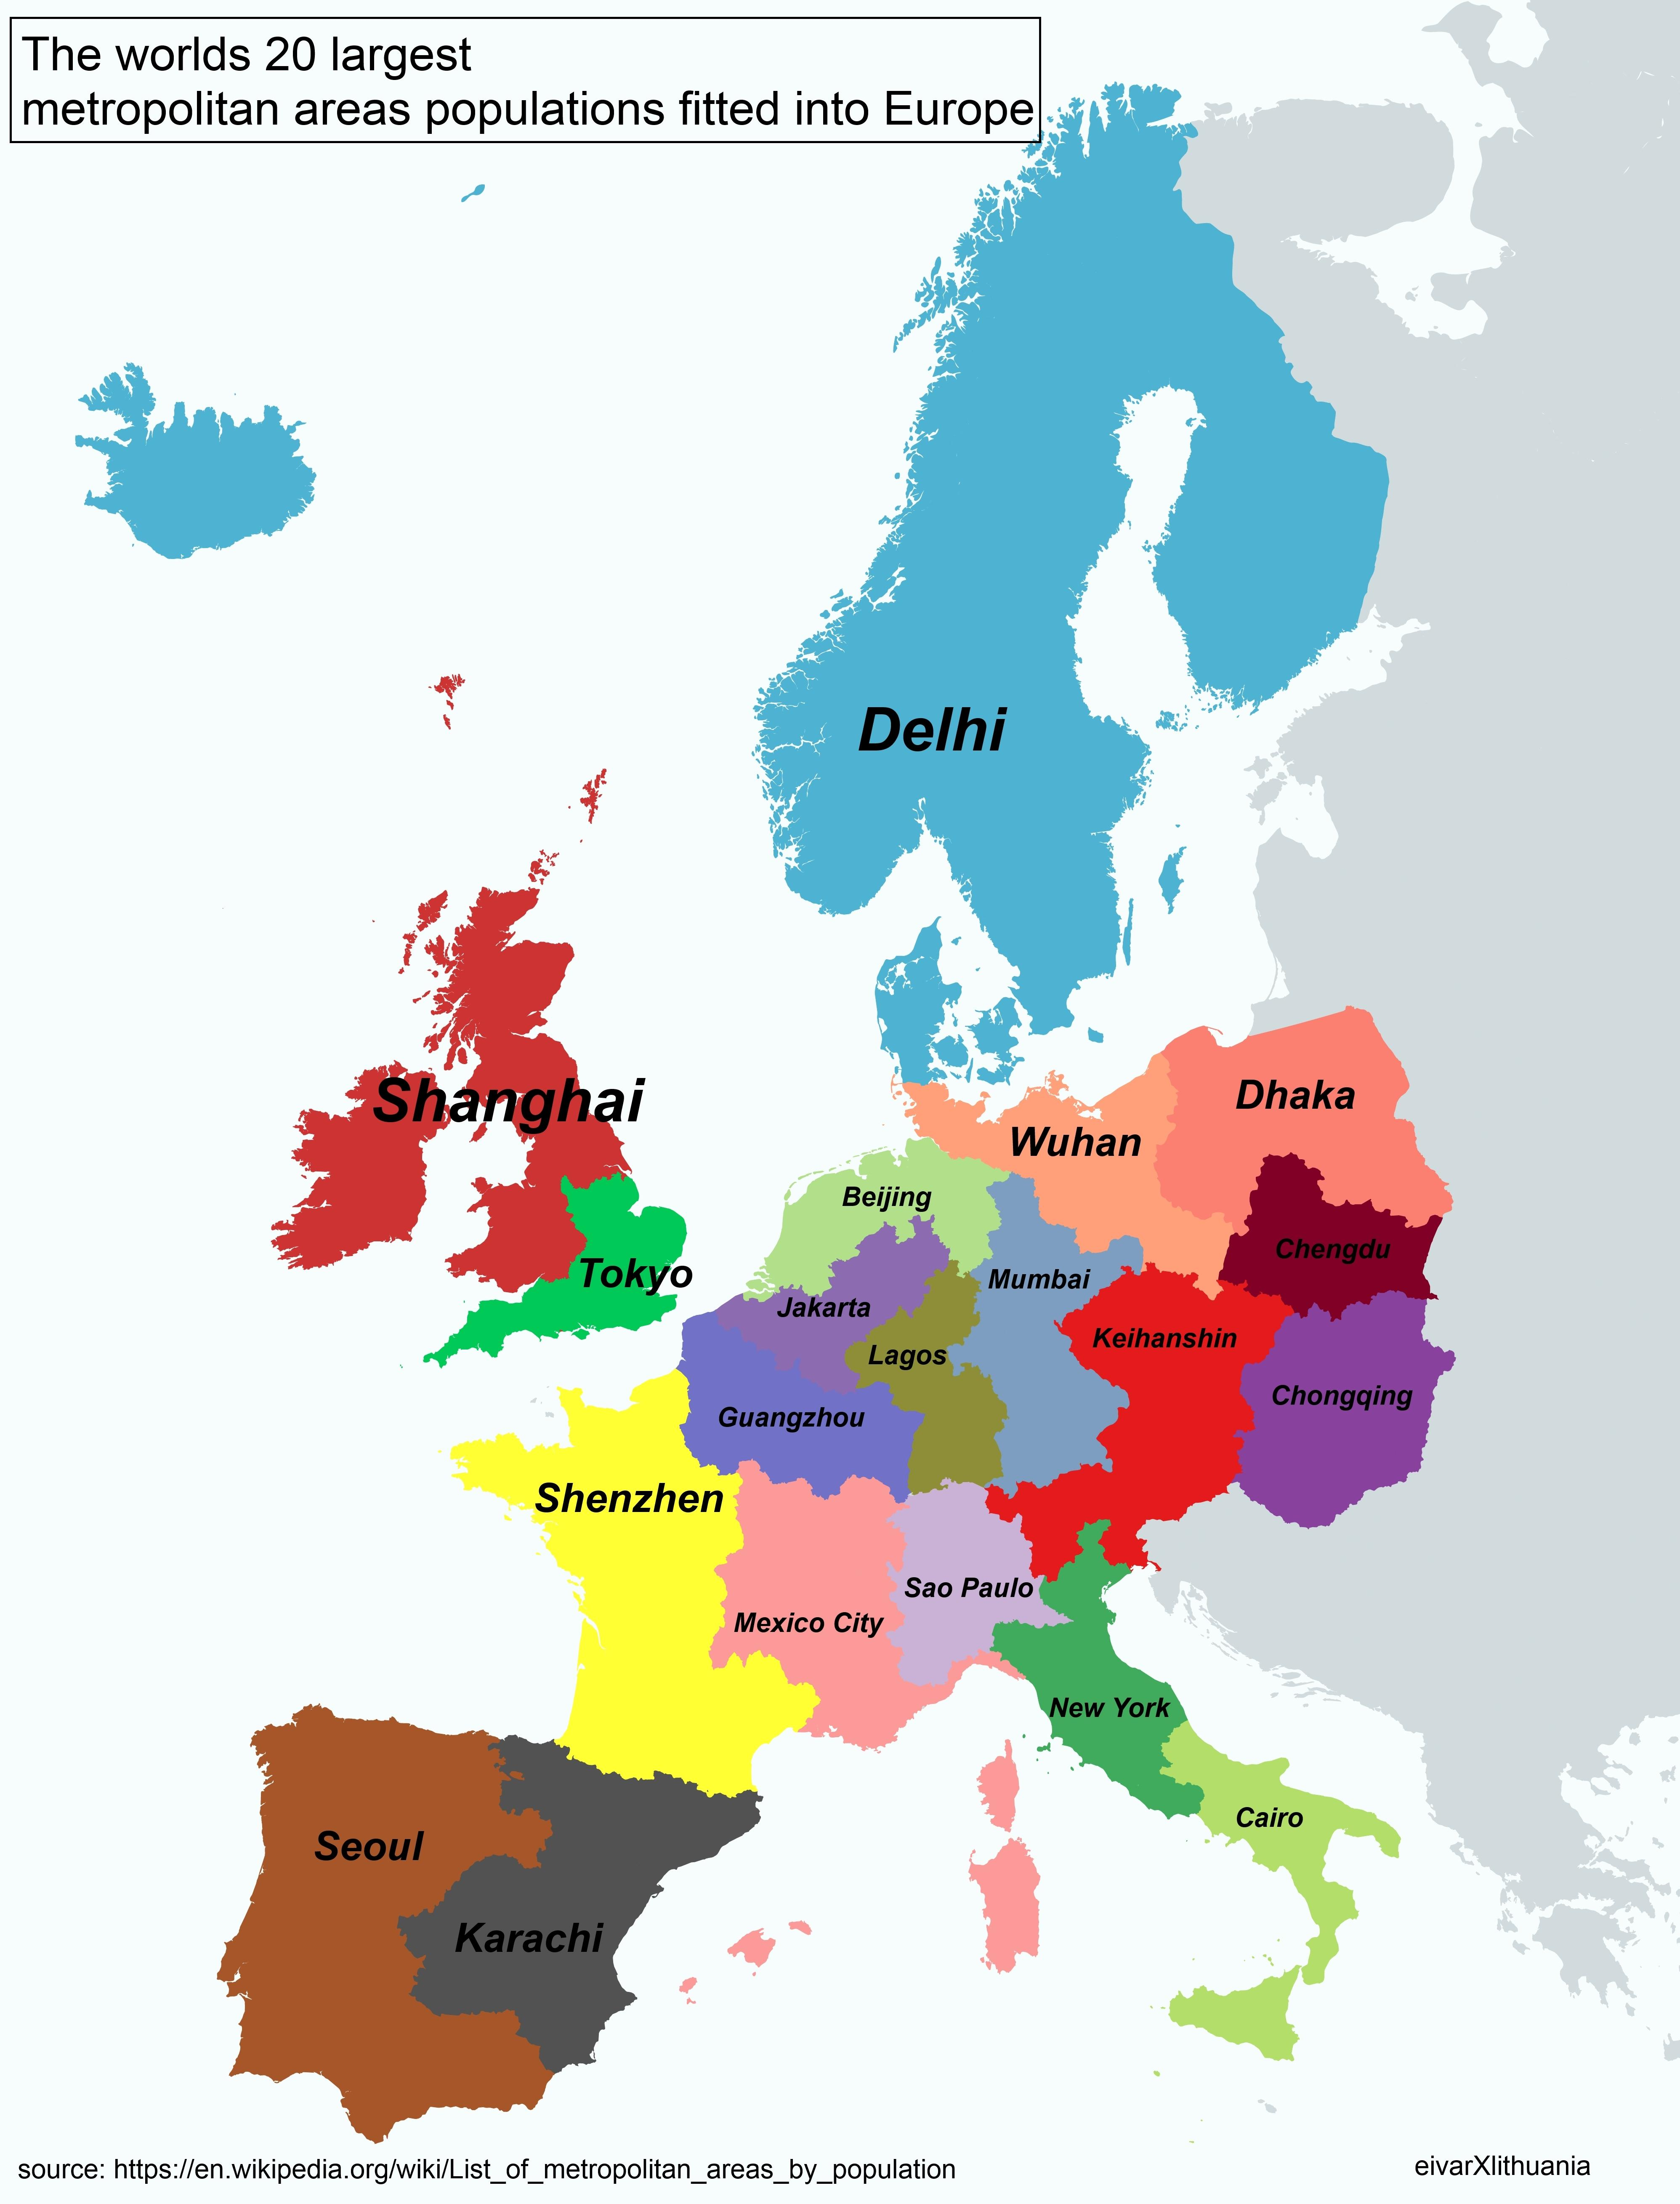 The worlds twenty largest metropolitan areas populations fitted into Europe